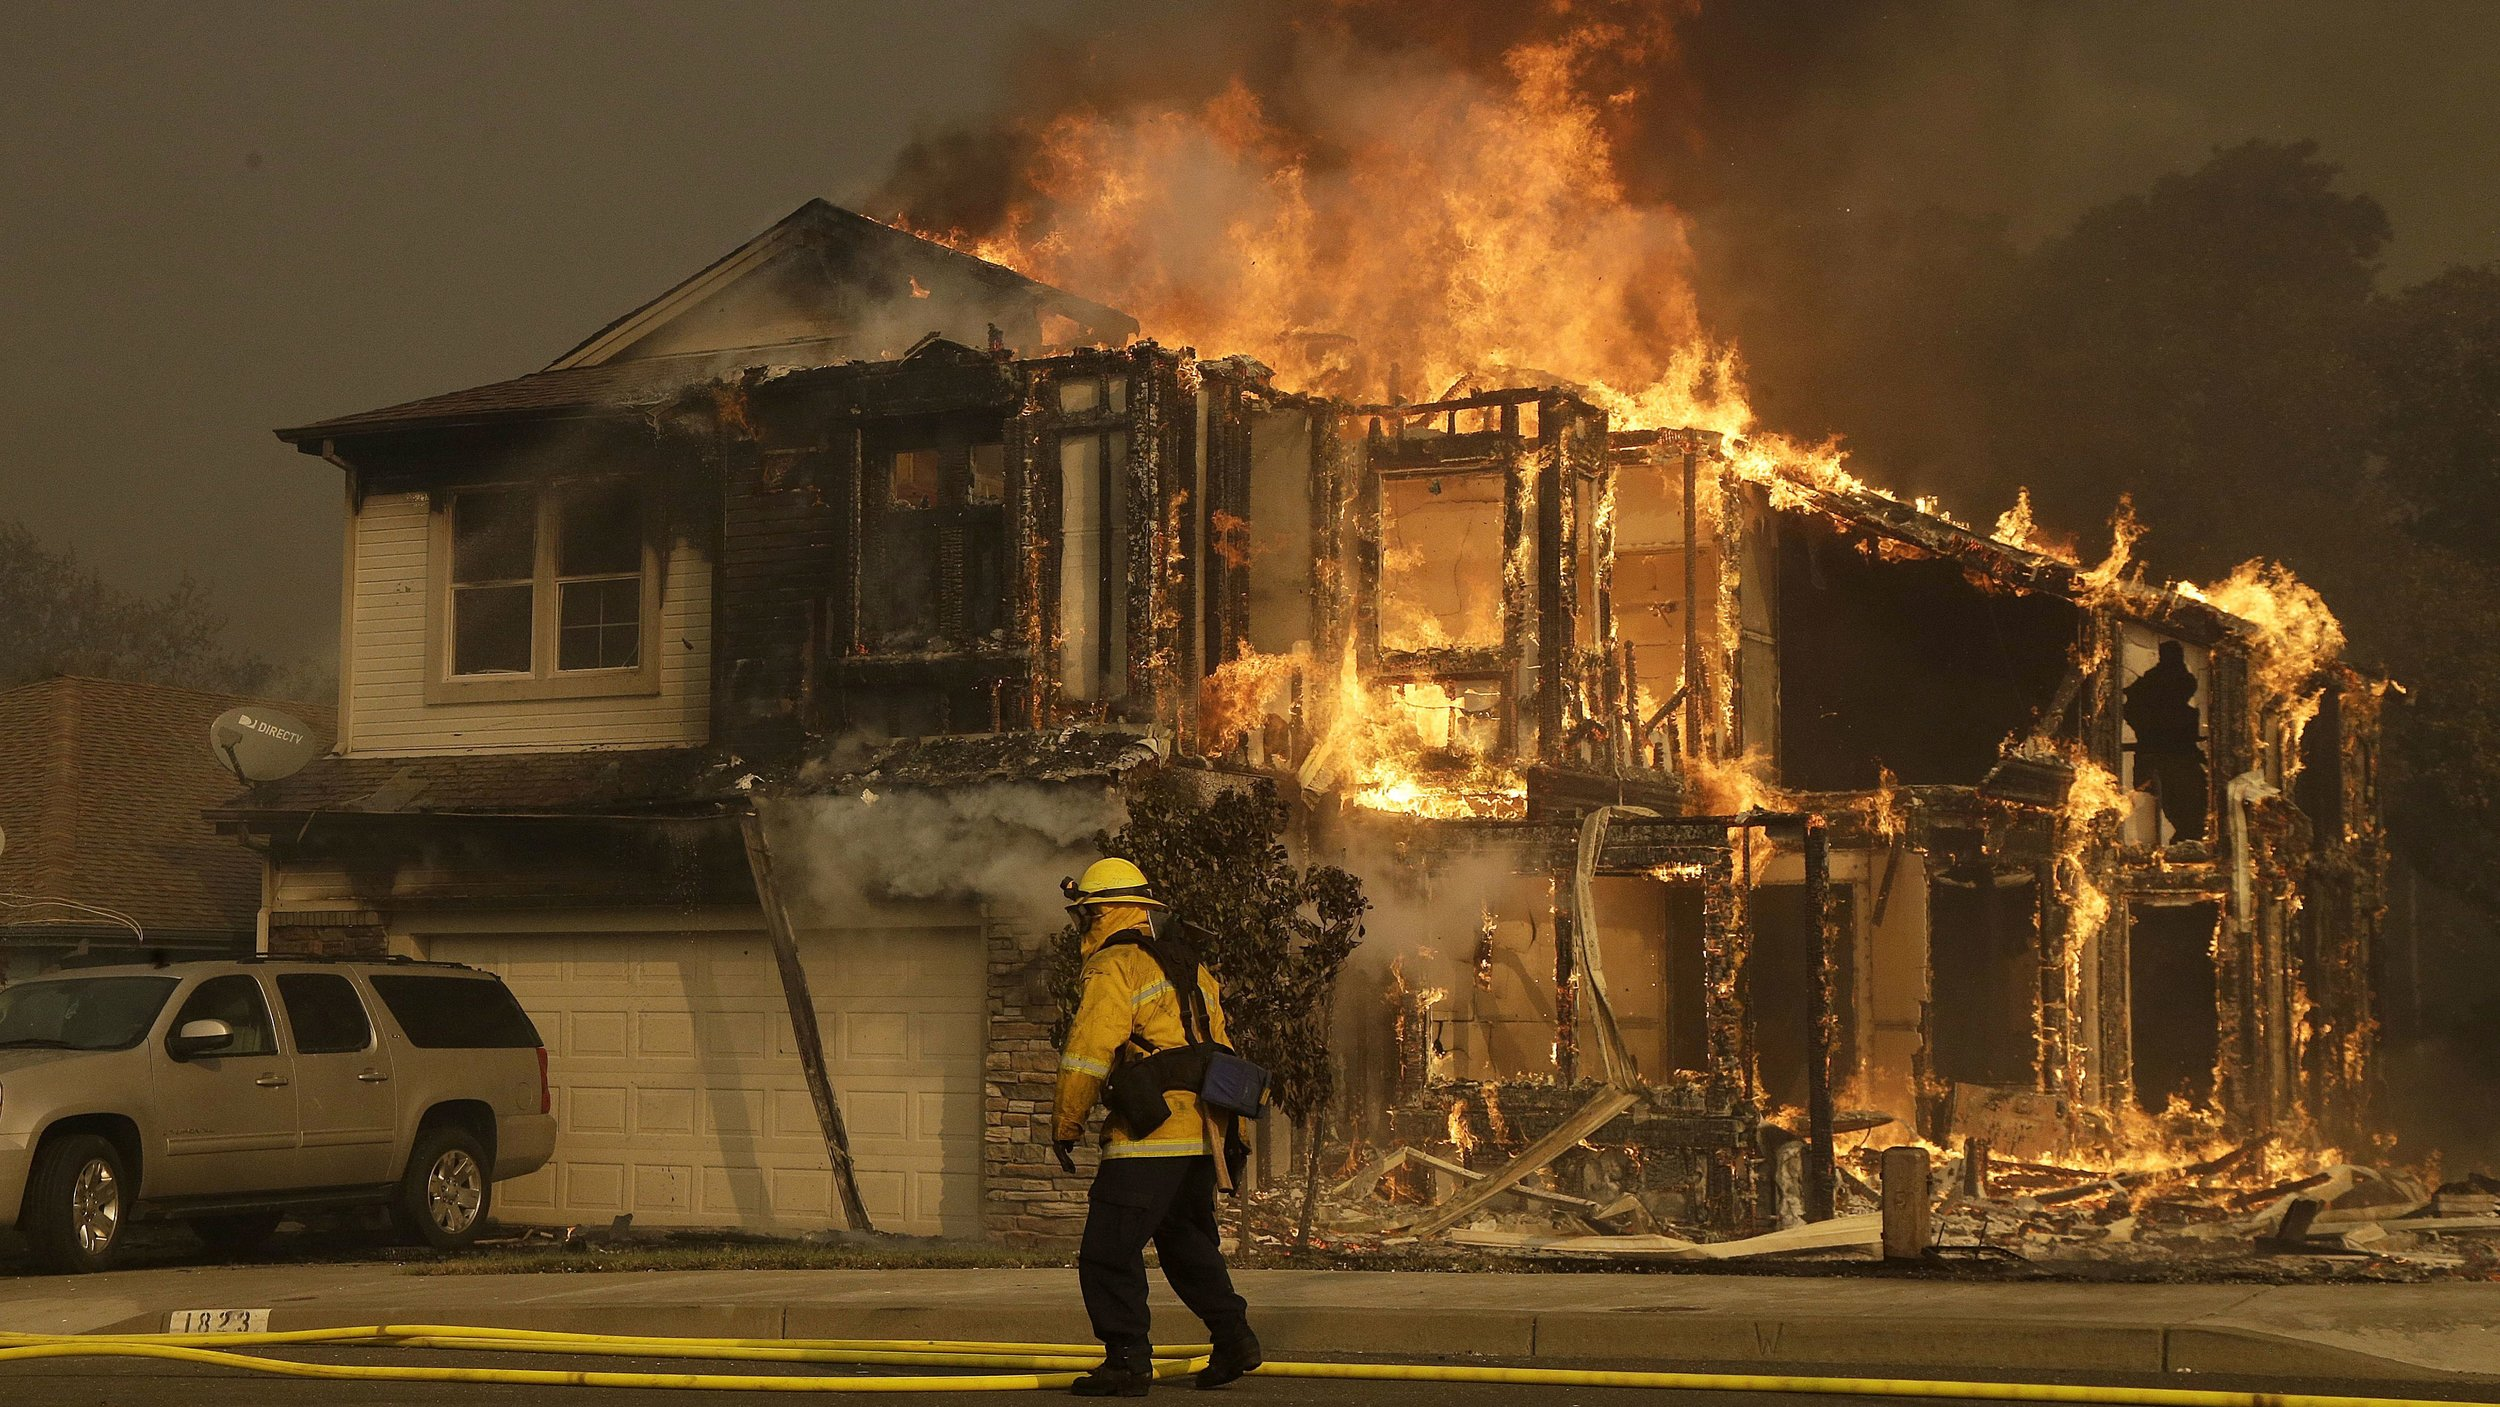 More than a dozen wildfires burning across Northern California have destroyed at least 5,700 structures.